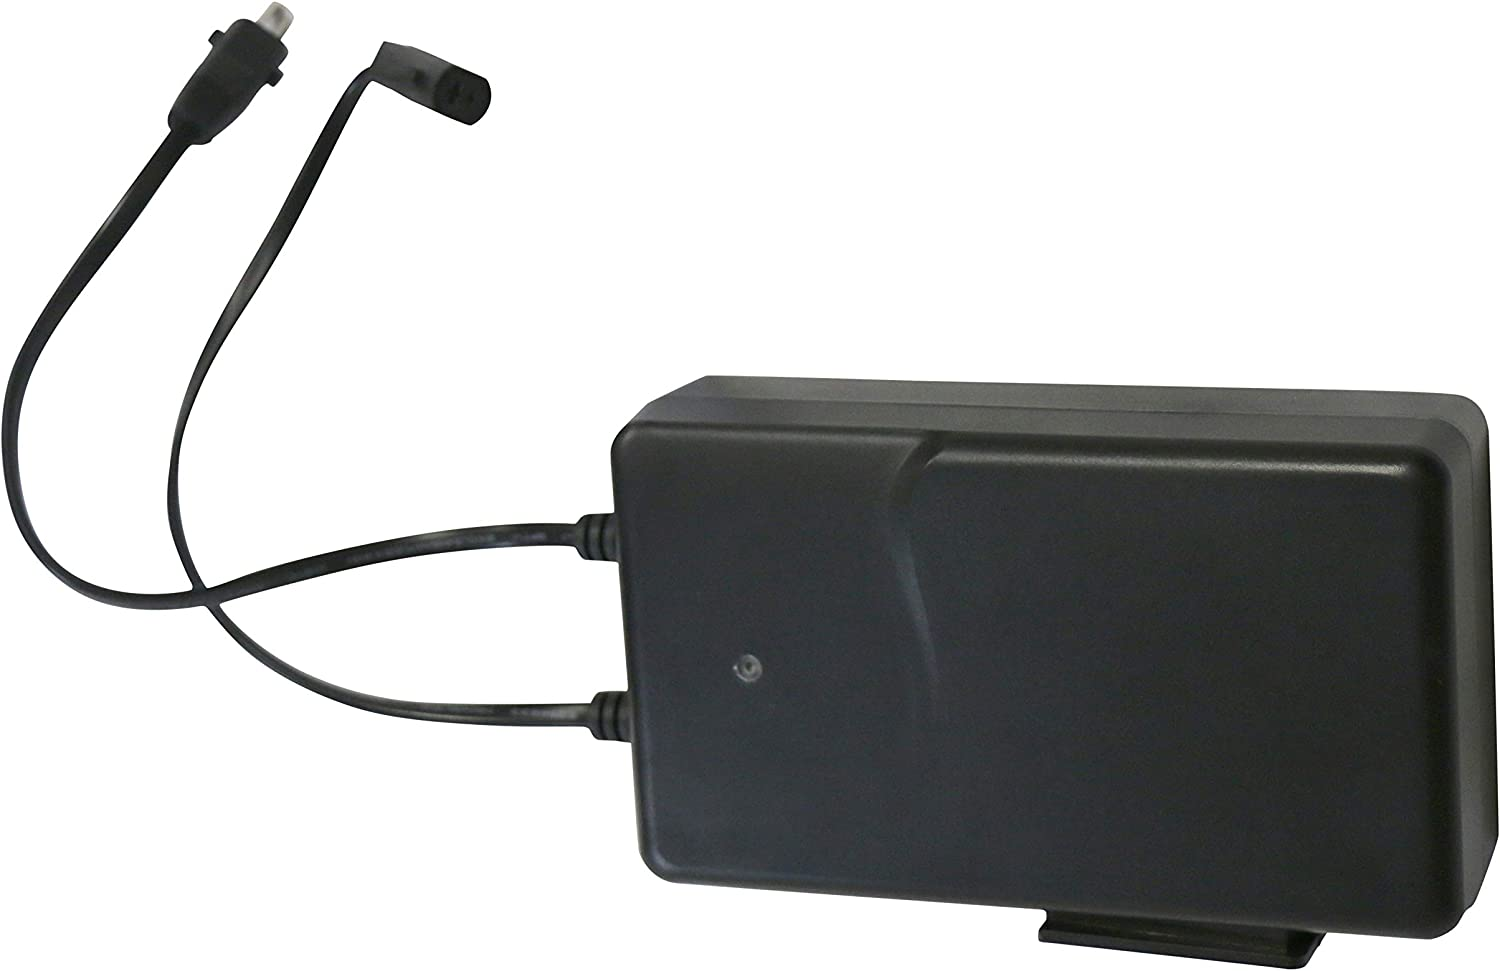 iRelax 2500 Wireless Battery Pack for Power Recliners and Motion Furniture